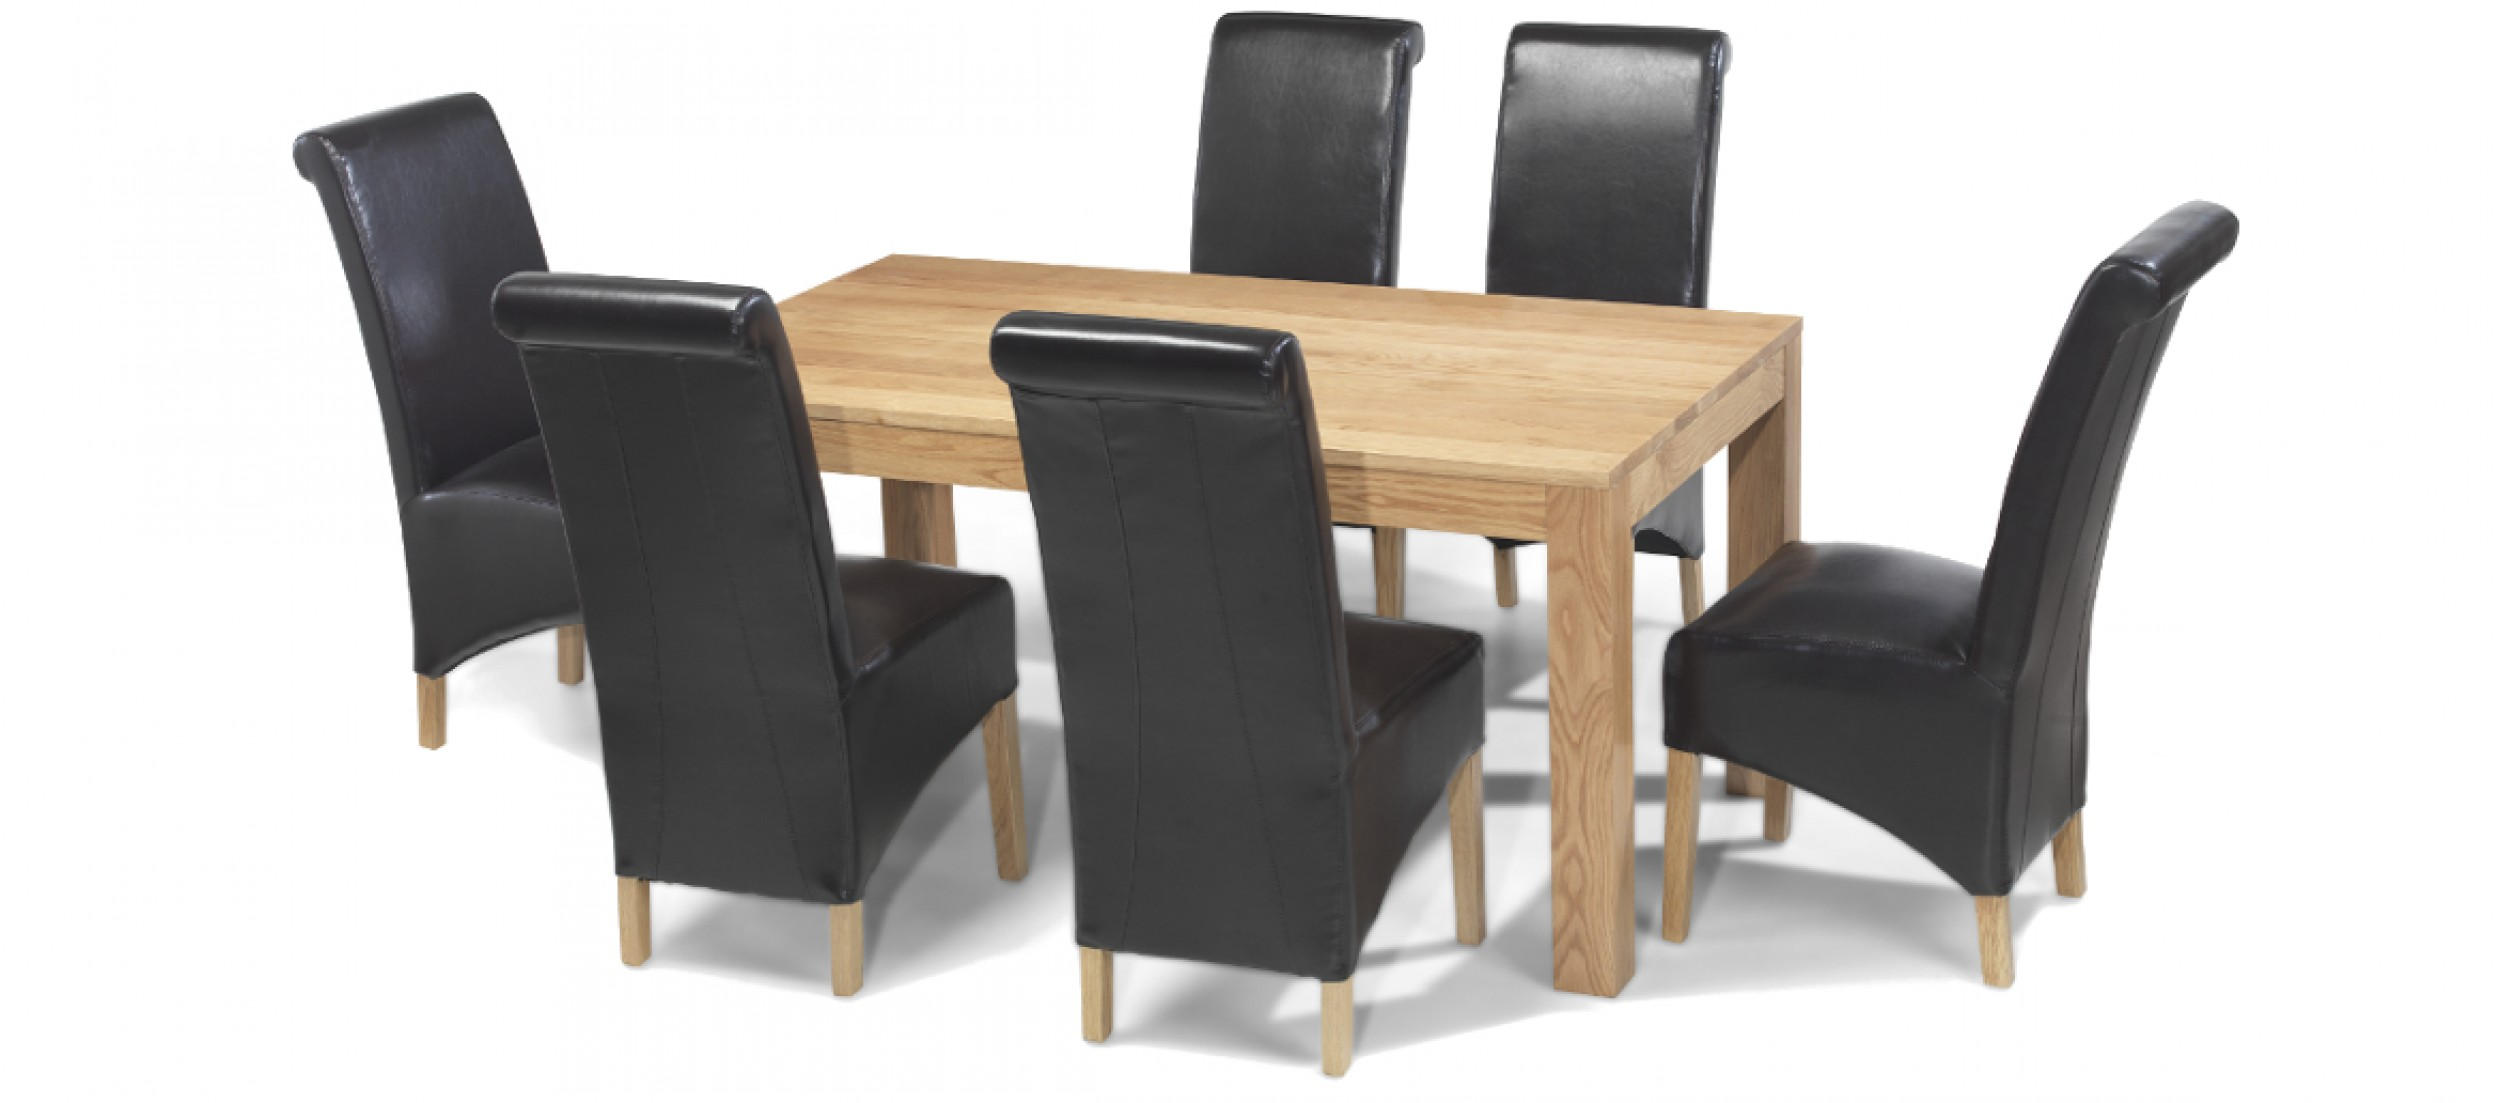 Cube oak 160 cm dining table and 6 chairs quercus living for Dining table and 6 chairs